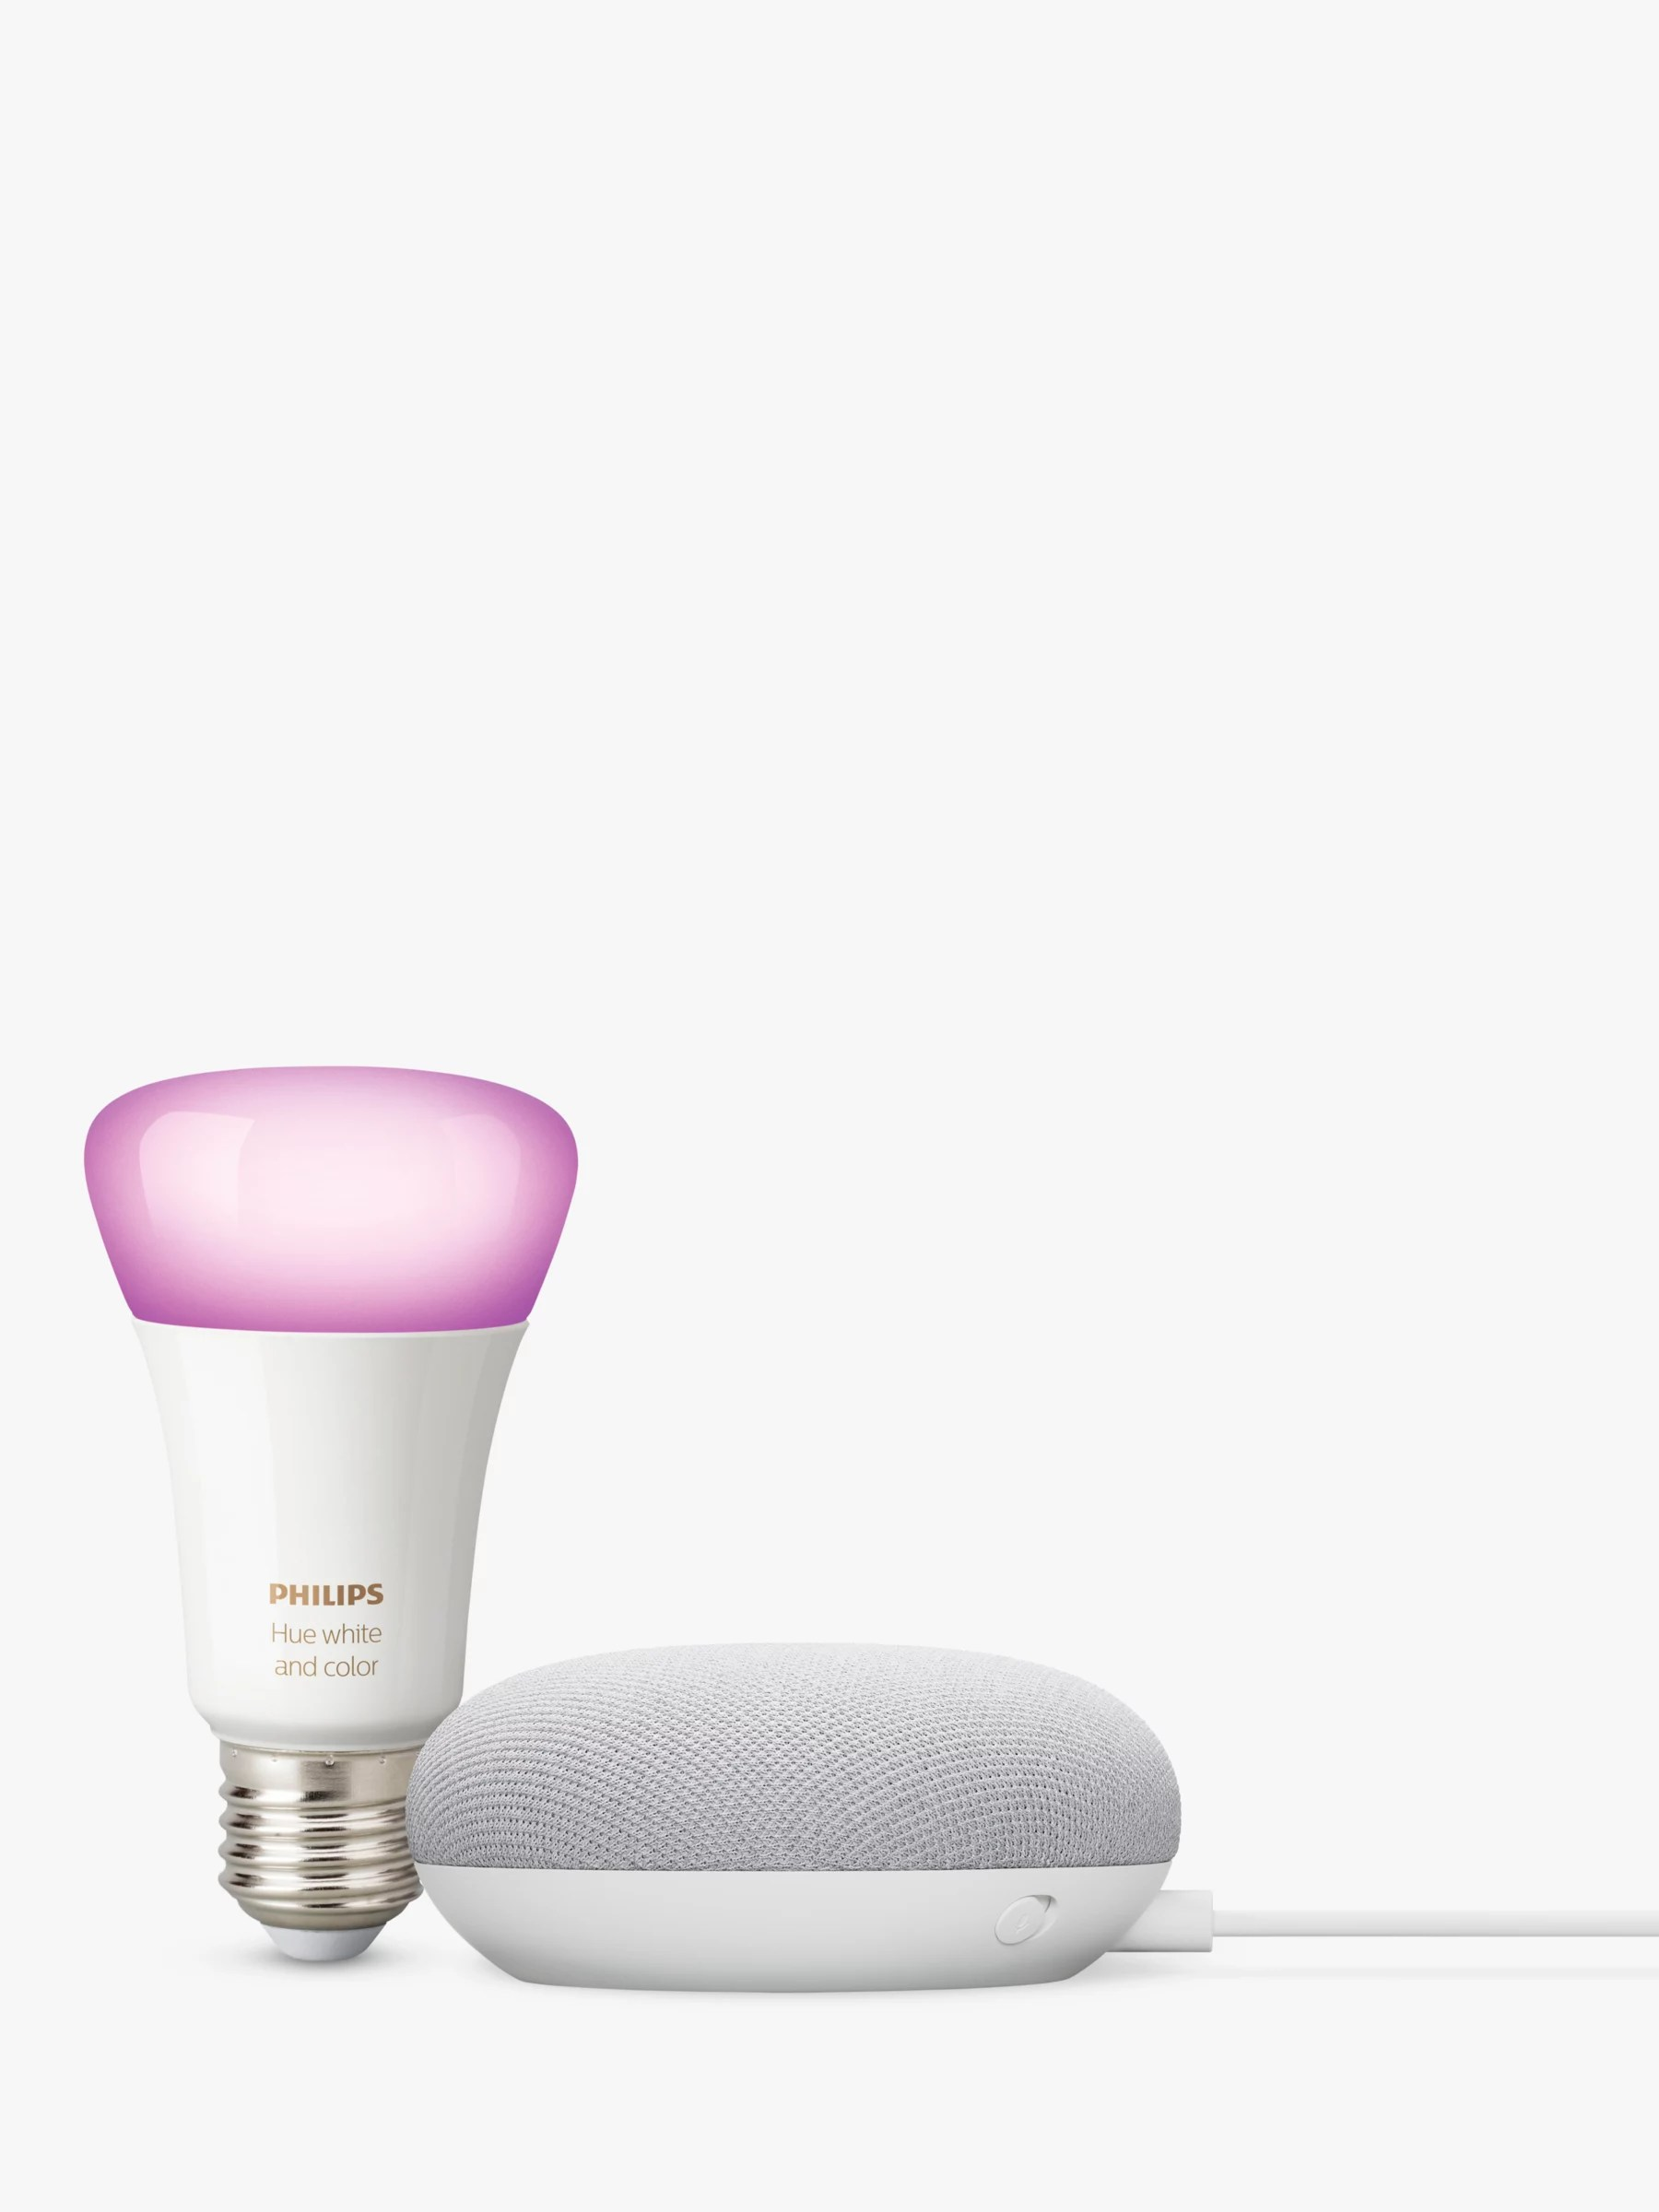 Philips Light Bulb Speaker Cheaper Than Retail Price Buy Clothing Accessories And Lifestyle Products For Women Men